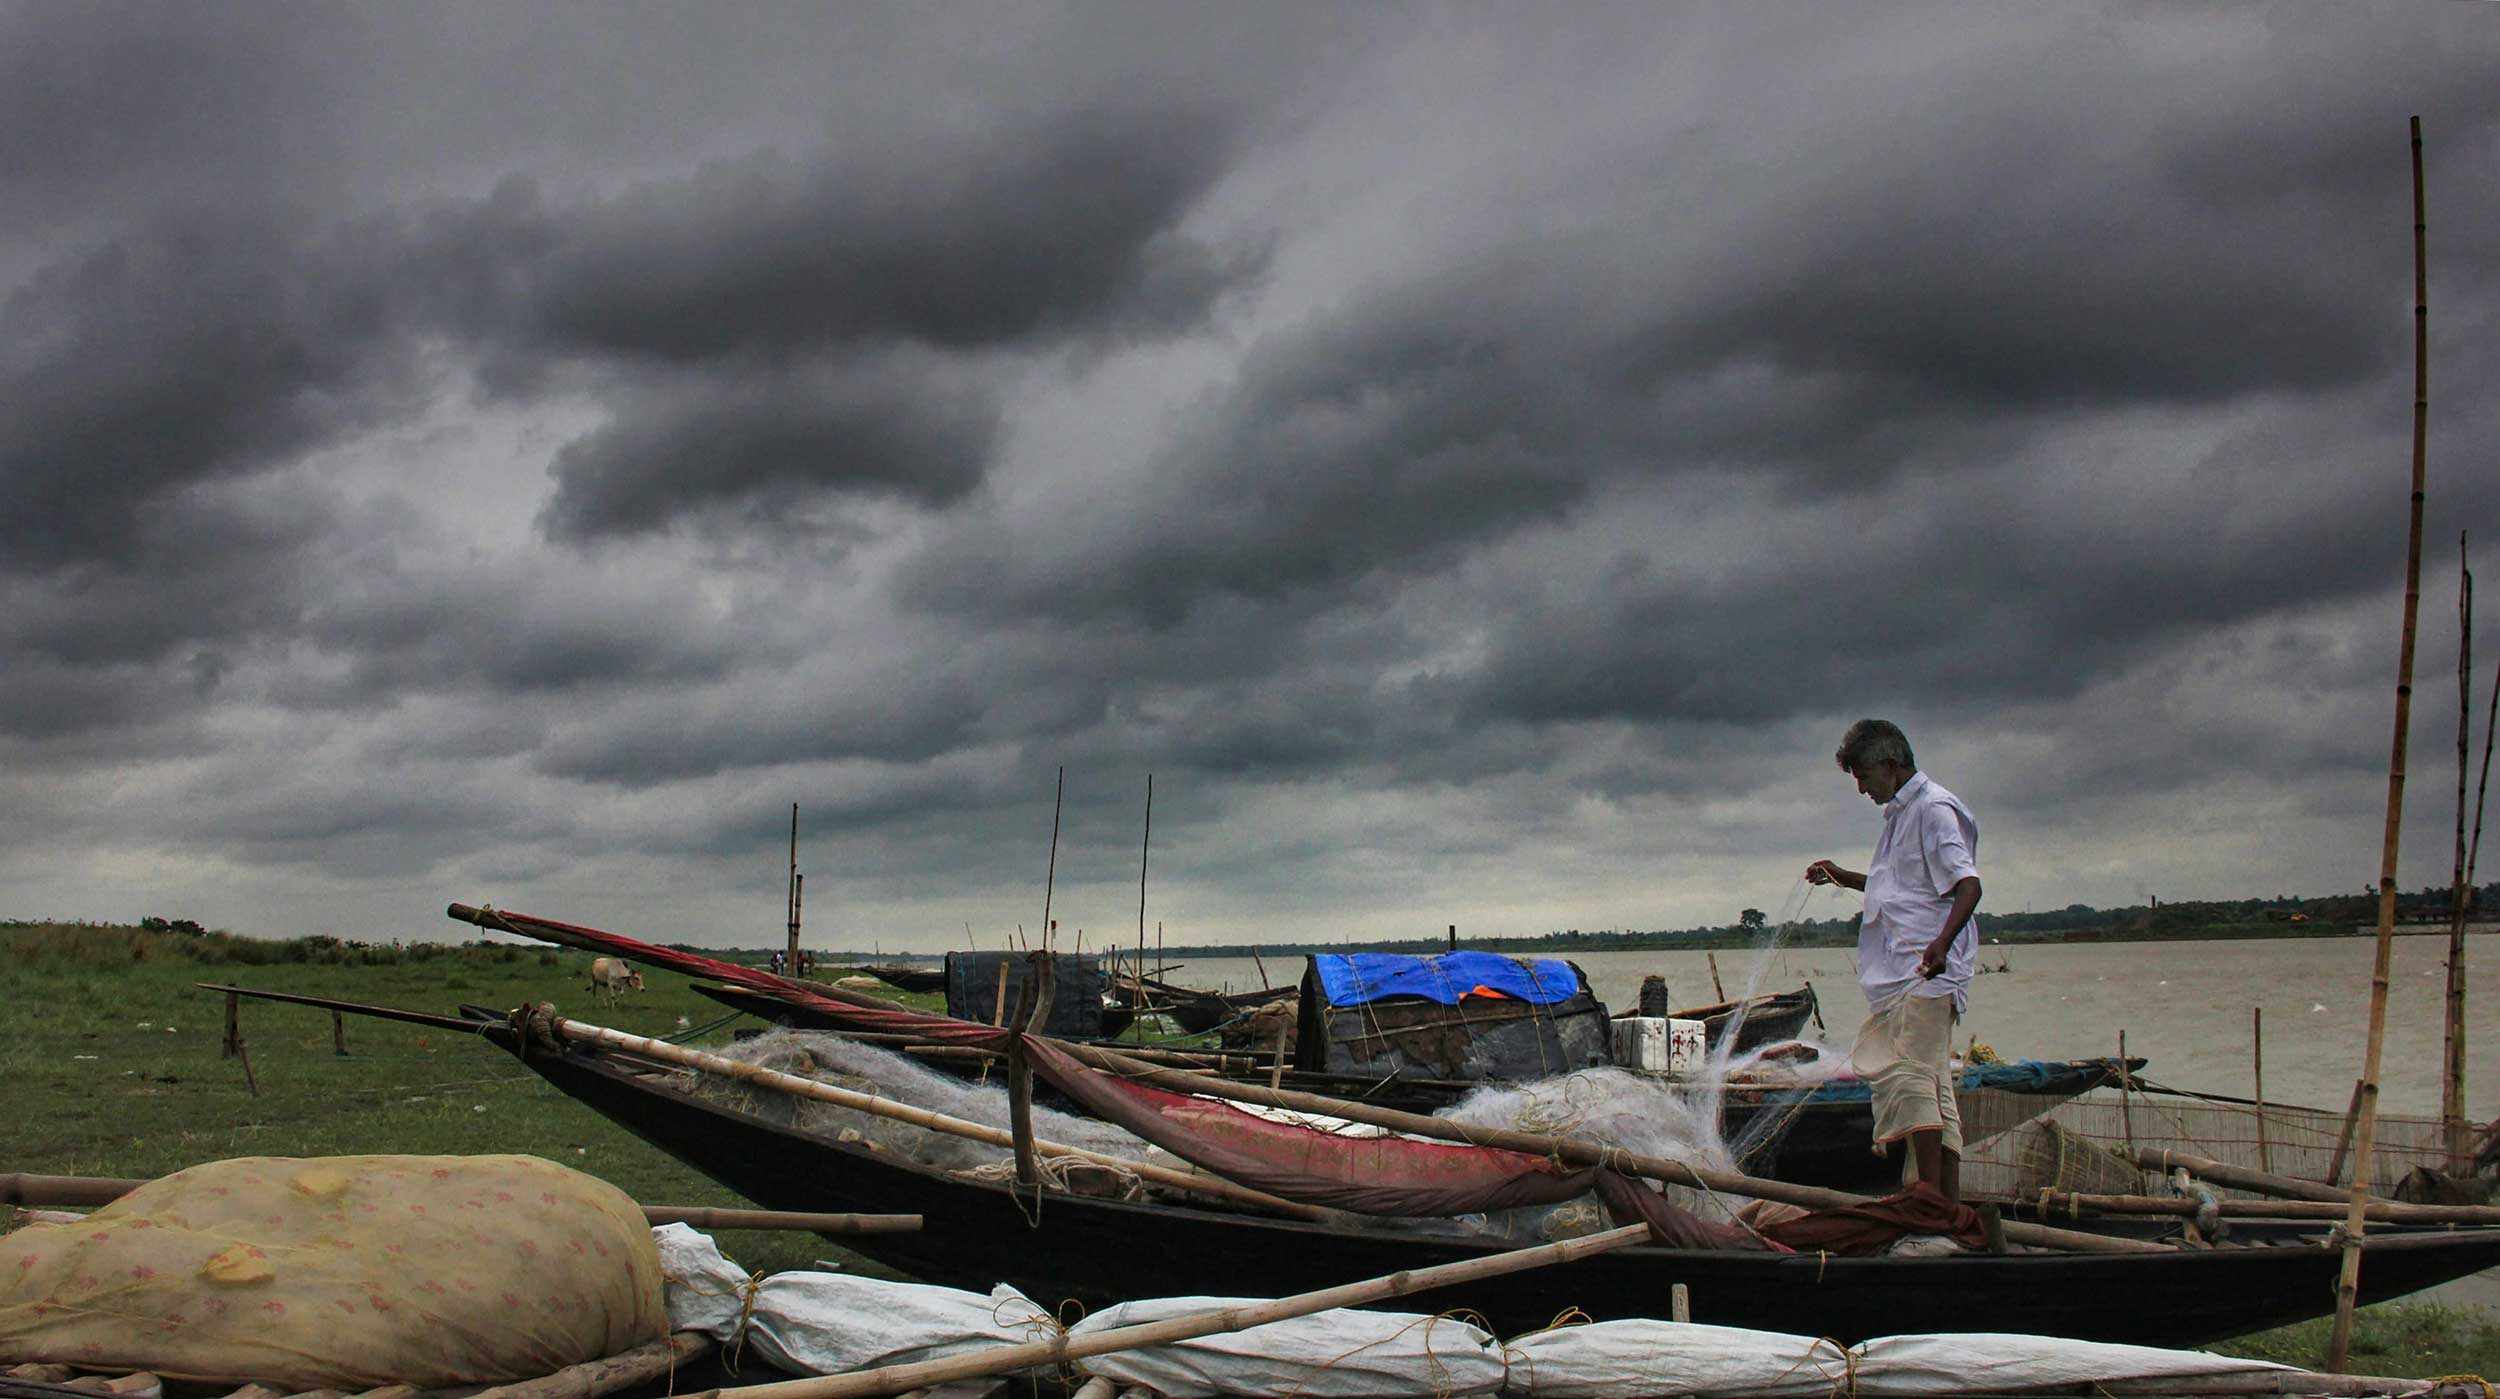 A fisherman arranges his fishing net before venturing out into the sea, after Cyclone Fani made landfall, in Nadia, on May 4, 2019. People of West Bengal heaved a sigh of relief as Fani weakened on Saturday morning and was moving towards Bangladesh.